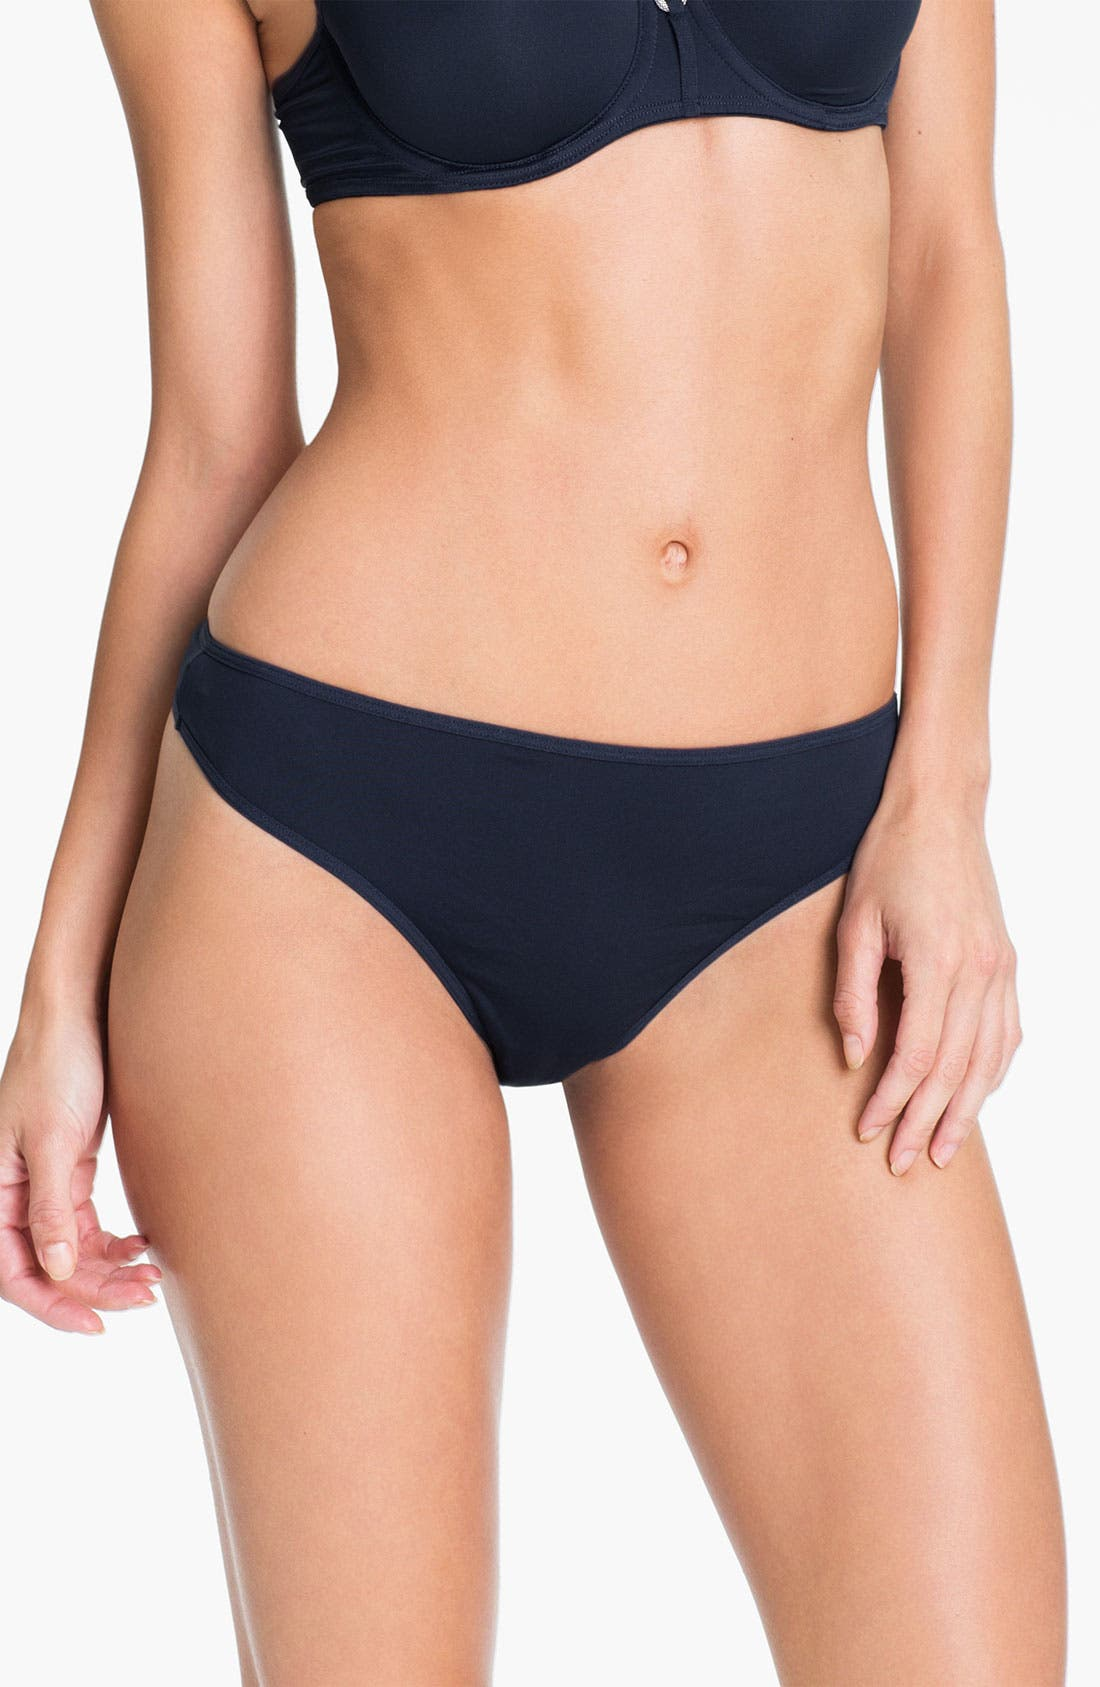 Alternate Image 1 Selected - Marlies Dekkers 'Calder' Thong